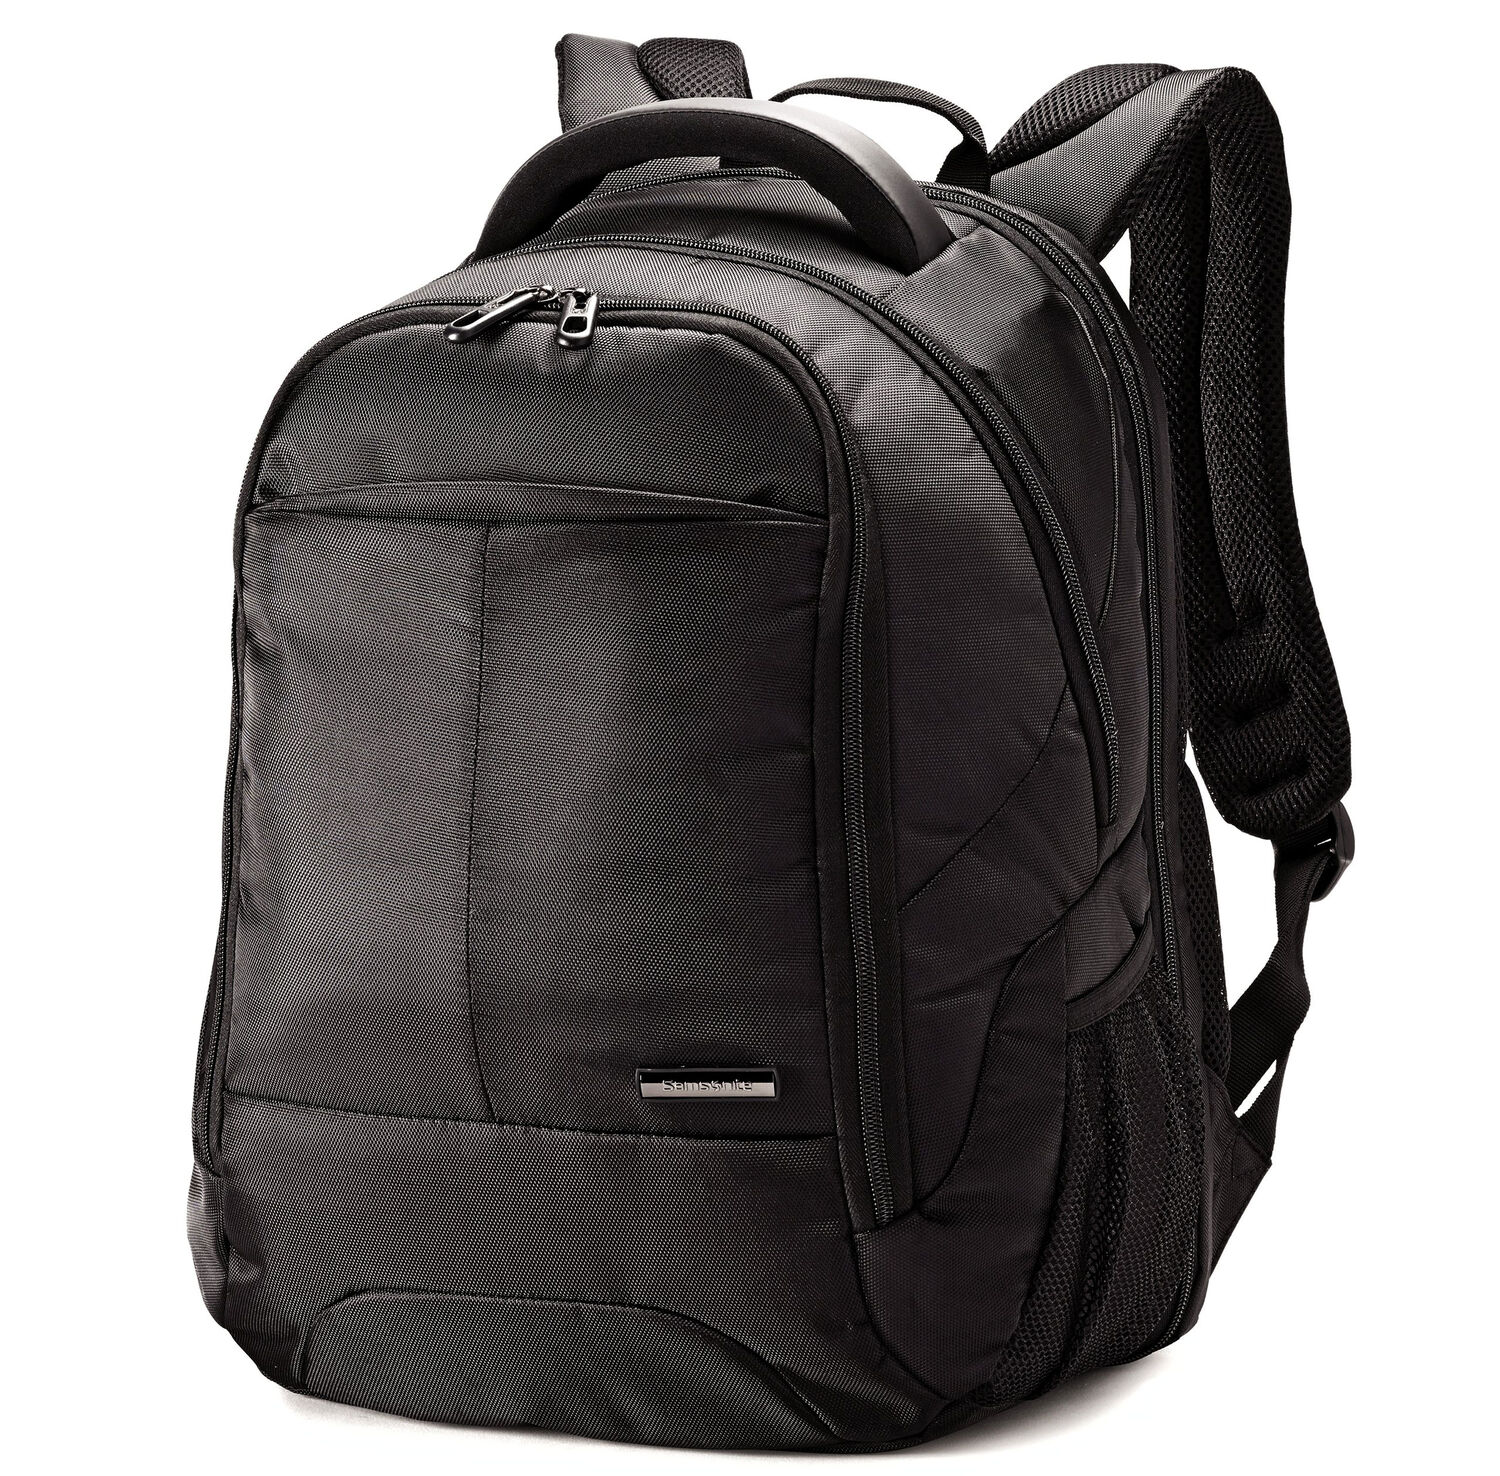 Samsonite Classic Business Perfect Fit Backpack The 6 In 1 Secret Pouch Bag Organiser Bgo 15 Color Black